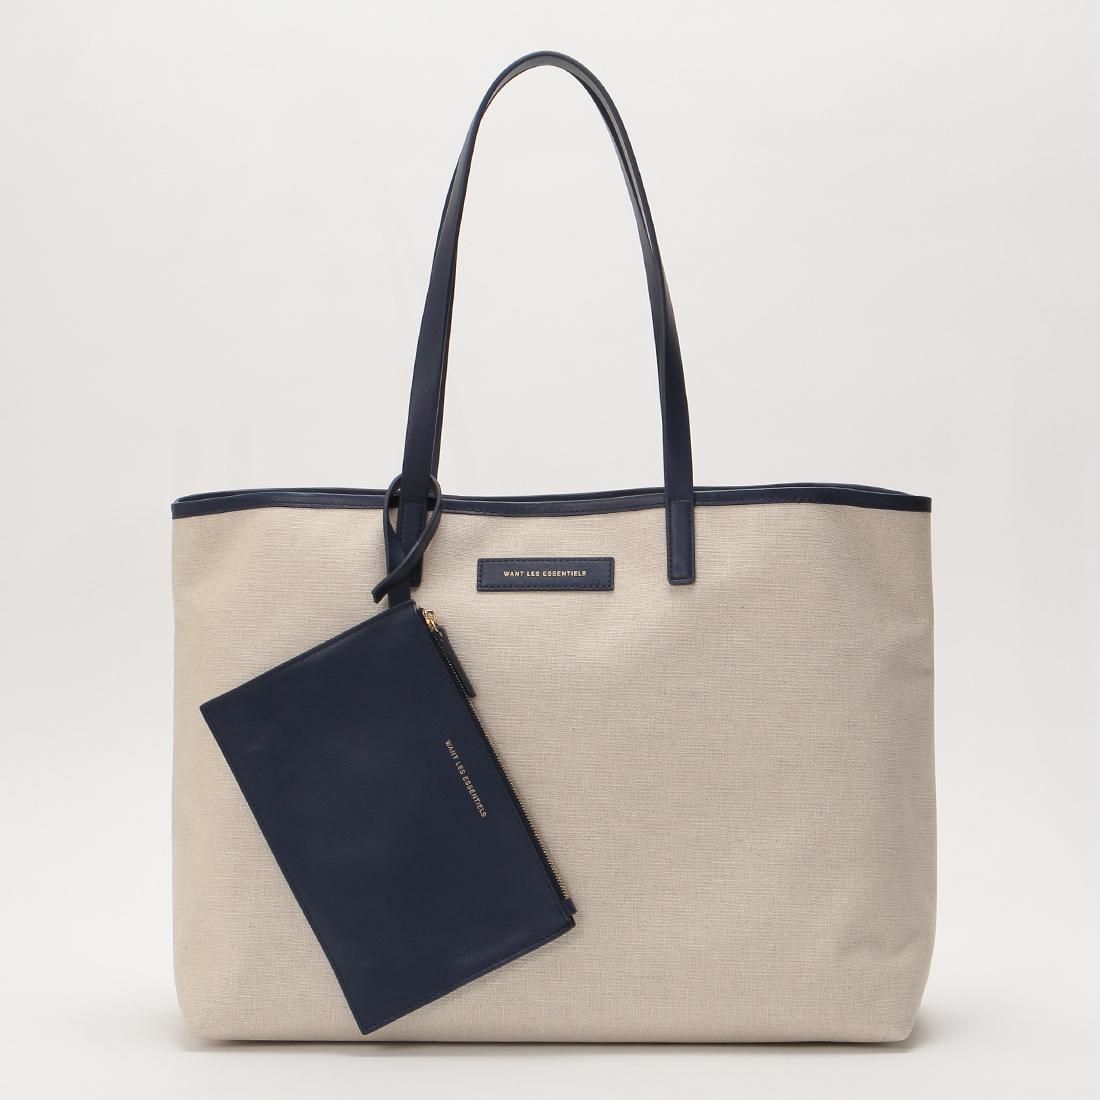 201606_mens-totebag-20select_041